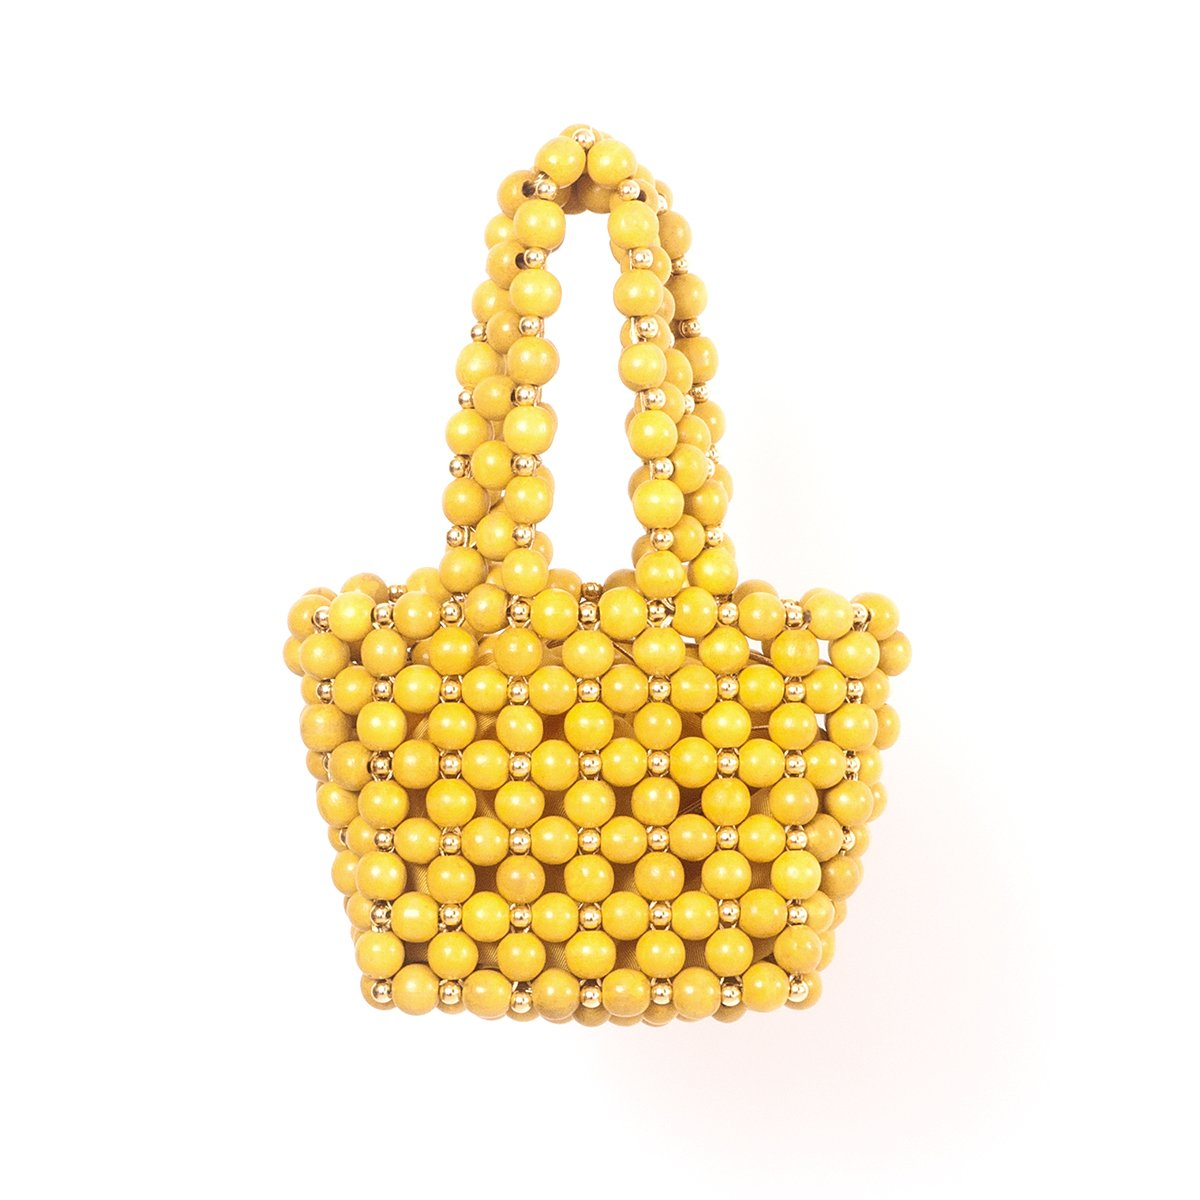 THE TEMPO YELLOW BAG